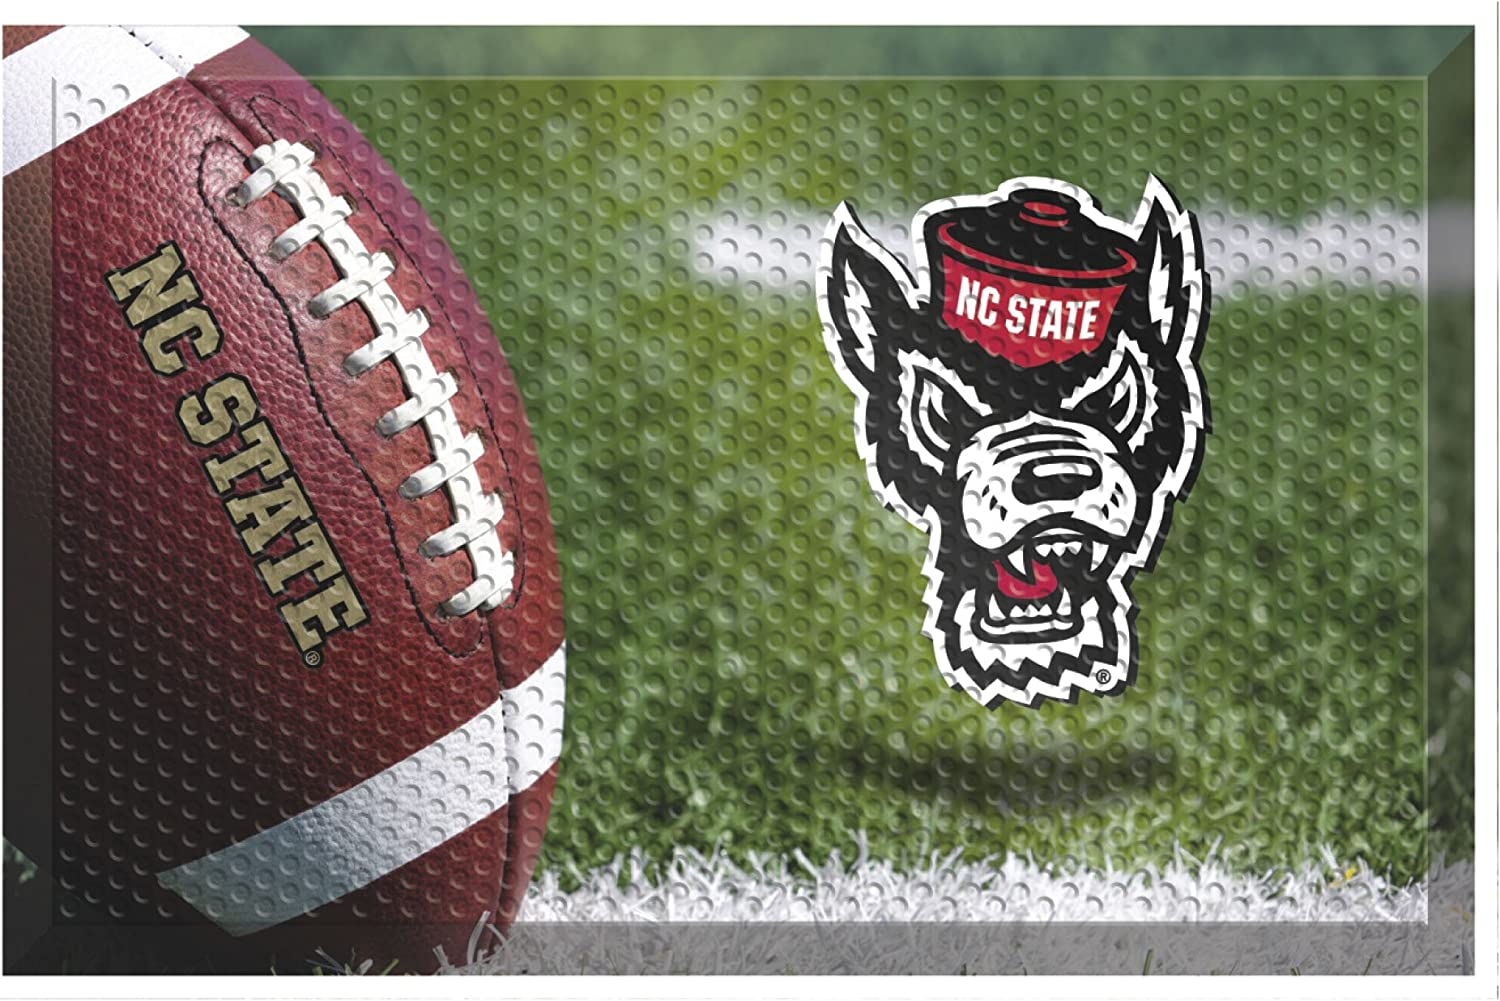 Popular product FANMATS NCAA North Carolina State Team Mats Fees free Co Wolfpack Scraper